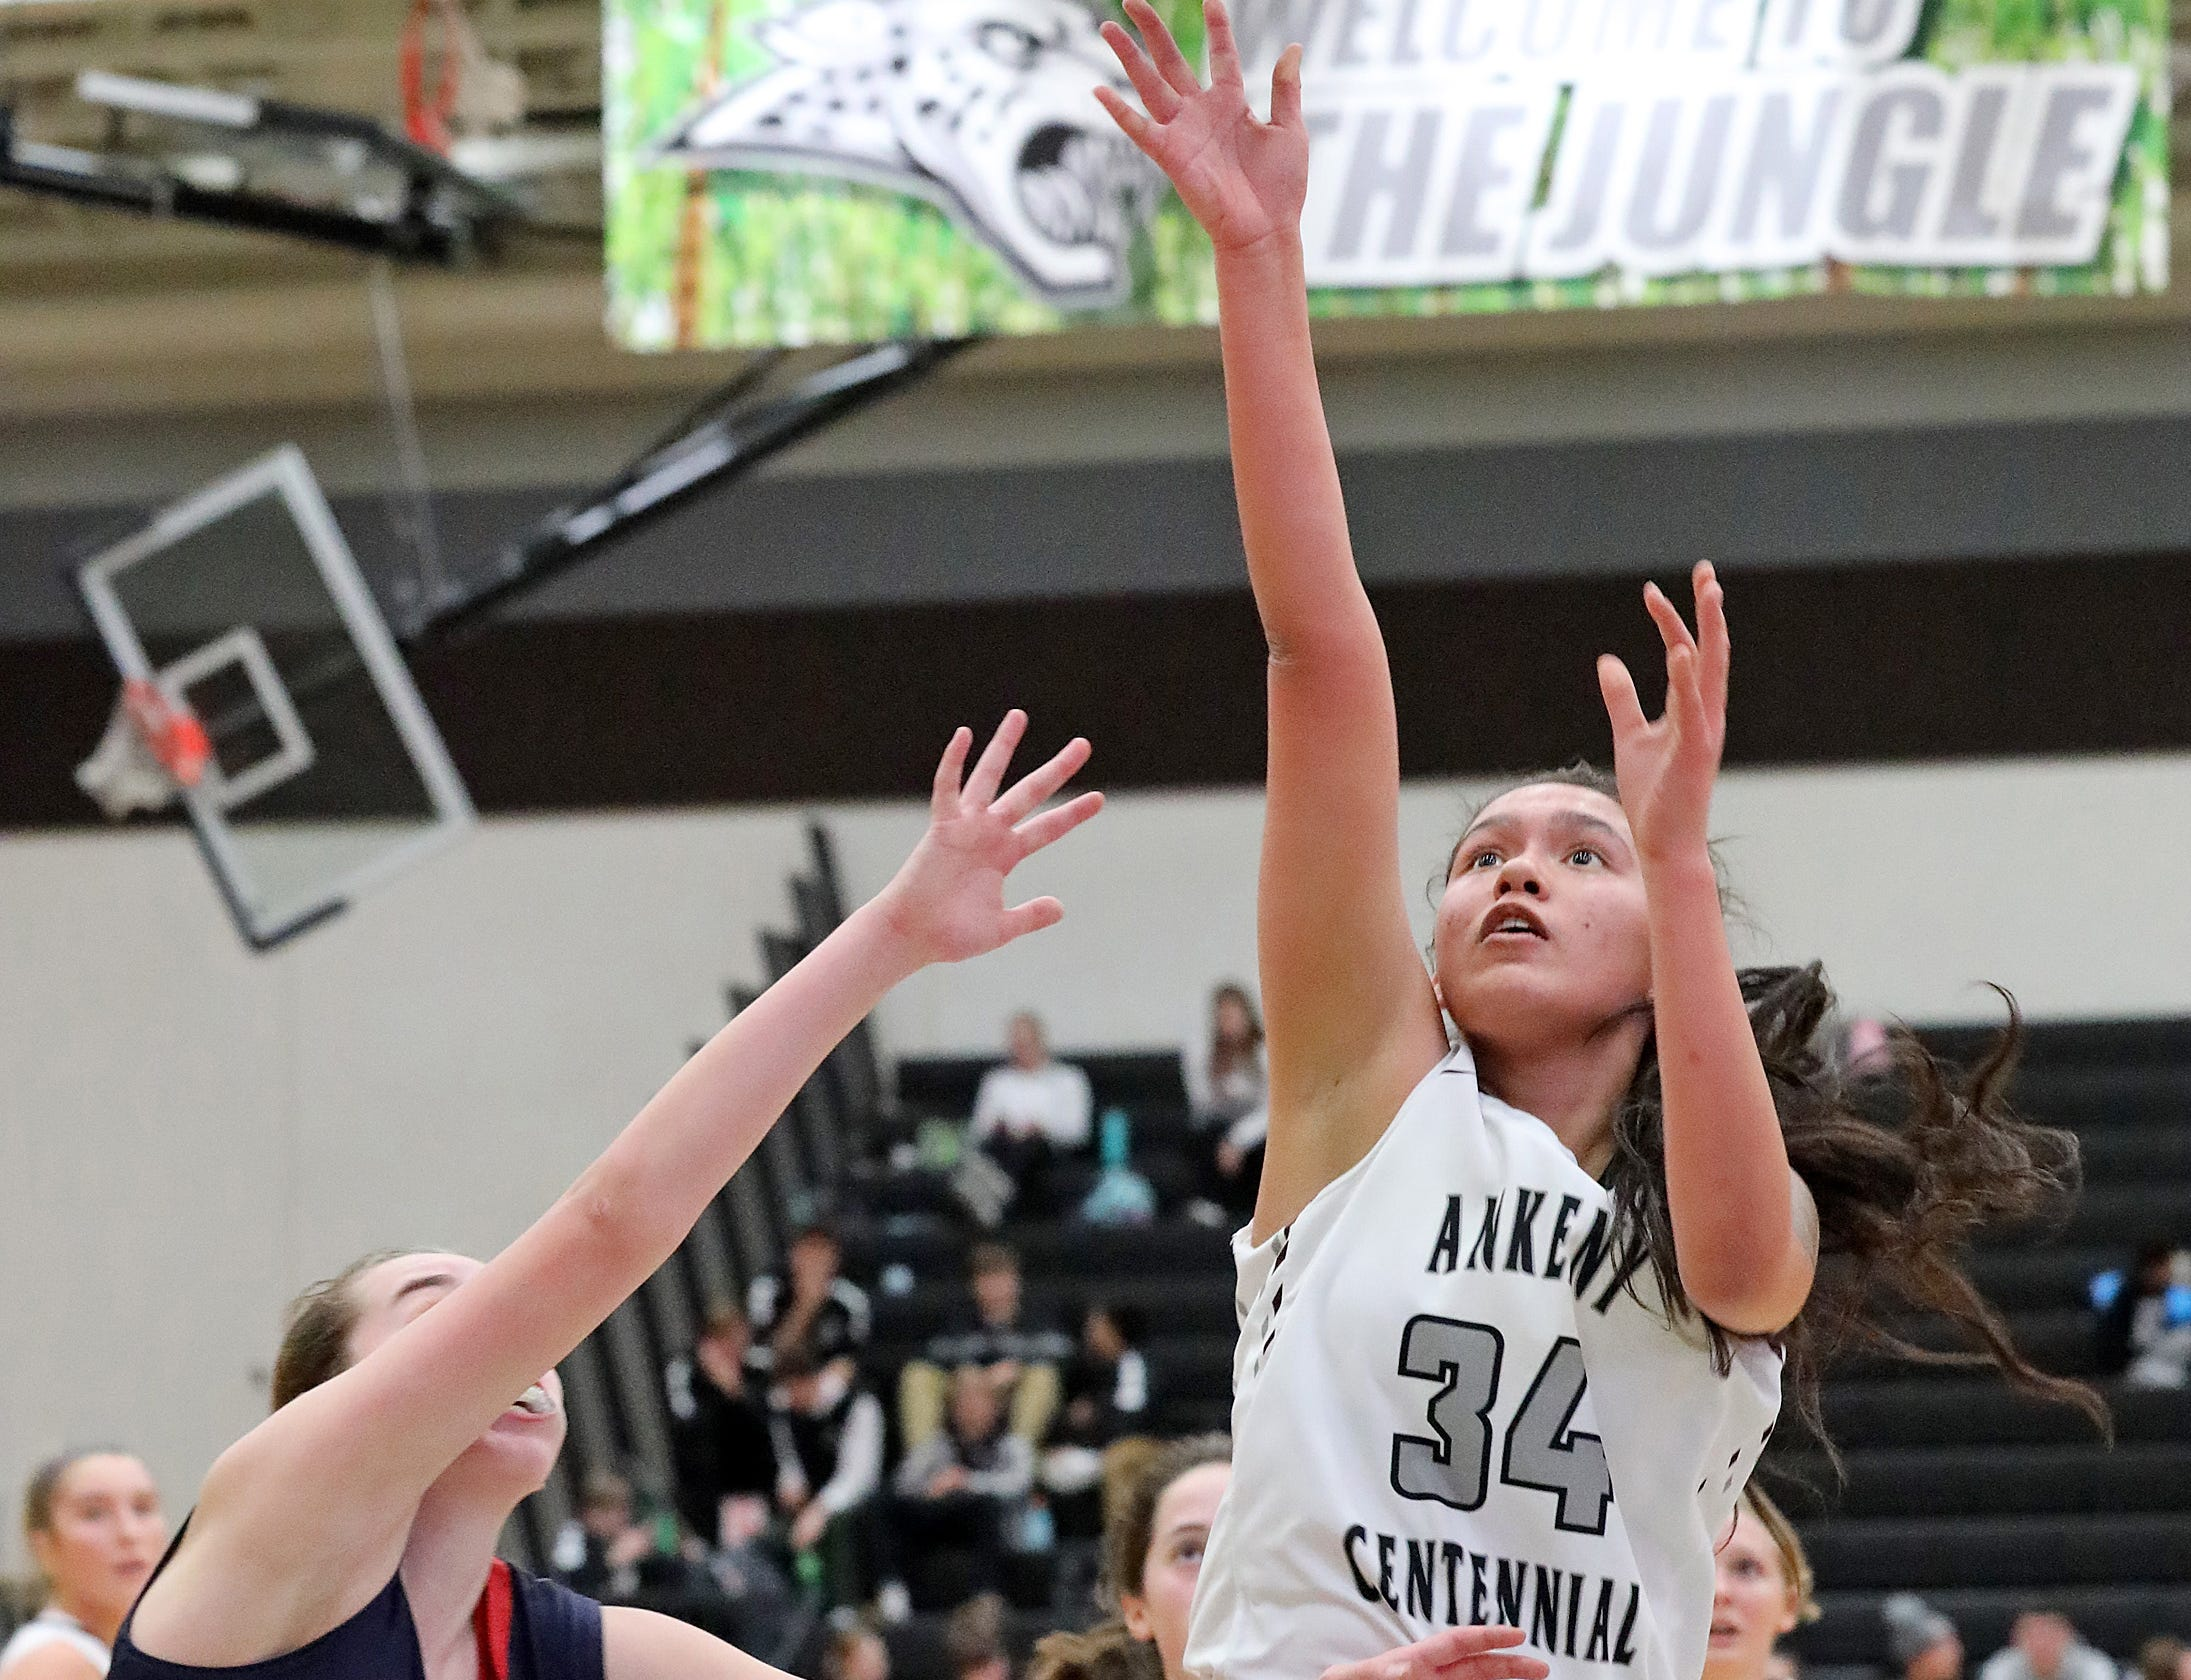 Ankeny Centennial junior Alexandria Keahna-Harris sinks the short jumper as the Marshalltown Bobcats compete against the Ankeny Centennial Jaguars in high school girls basketball on Tuesday, Jan. 8, 2019 at Ankeny Centennial High School.  ACHS won 70 to 19.